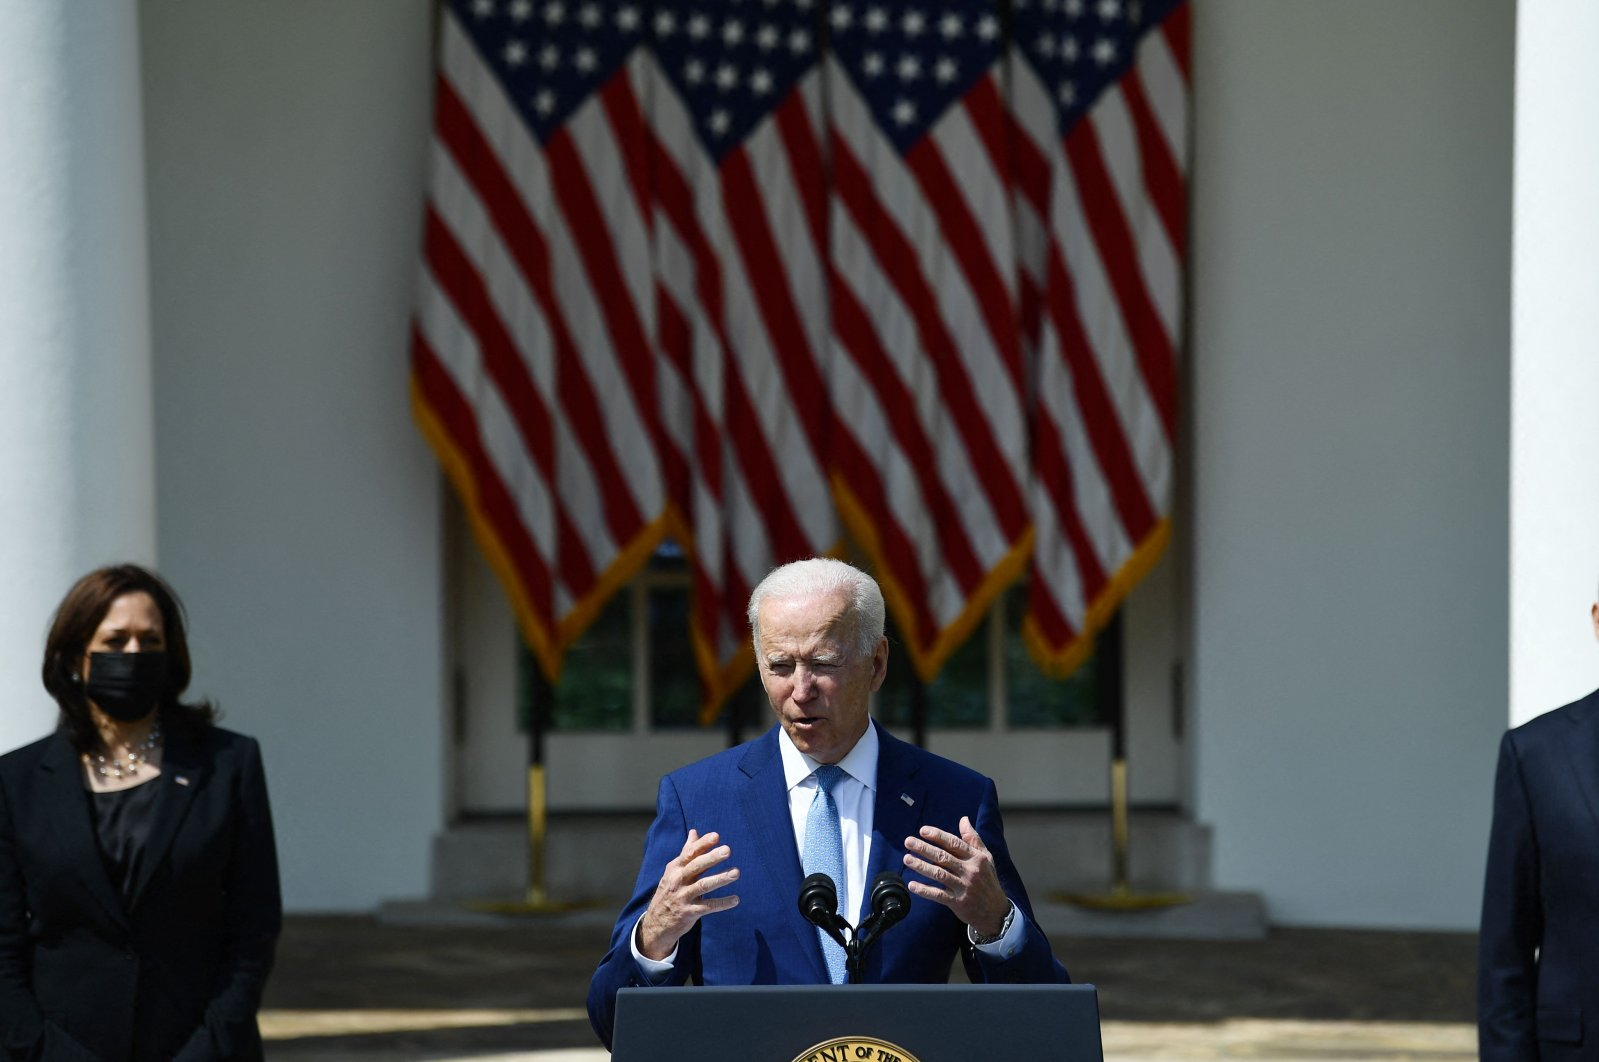 U.S. President Joe Biden (C) speaks about gun violence prevention with Vice President Kamala Harris (L) and Attorney General Merrick Garland in the Rose Garden of the White House in Washington, D.C., on April 8, 2021. (AFP Photo)